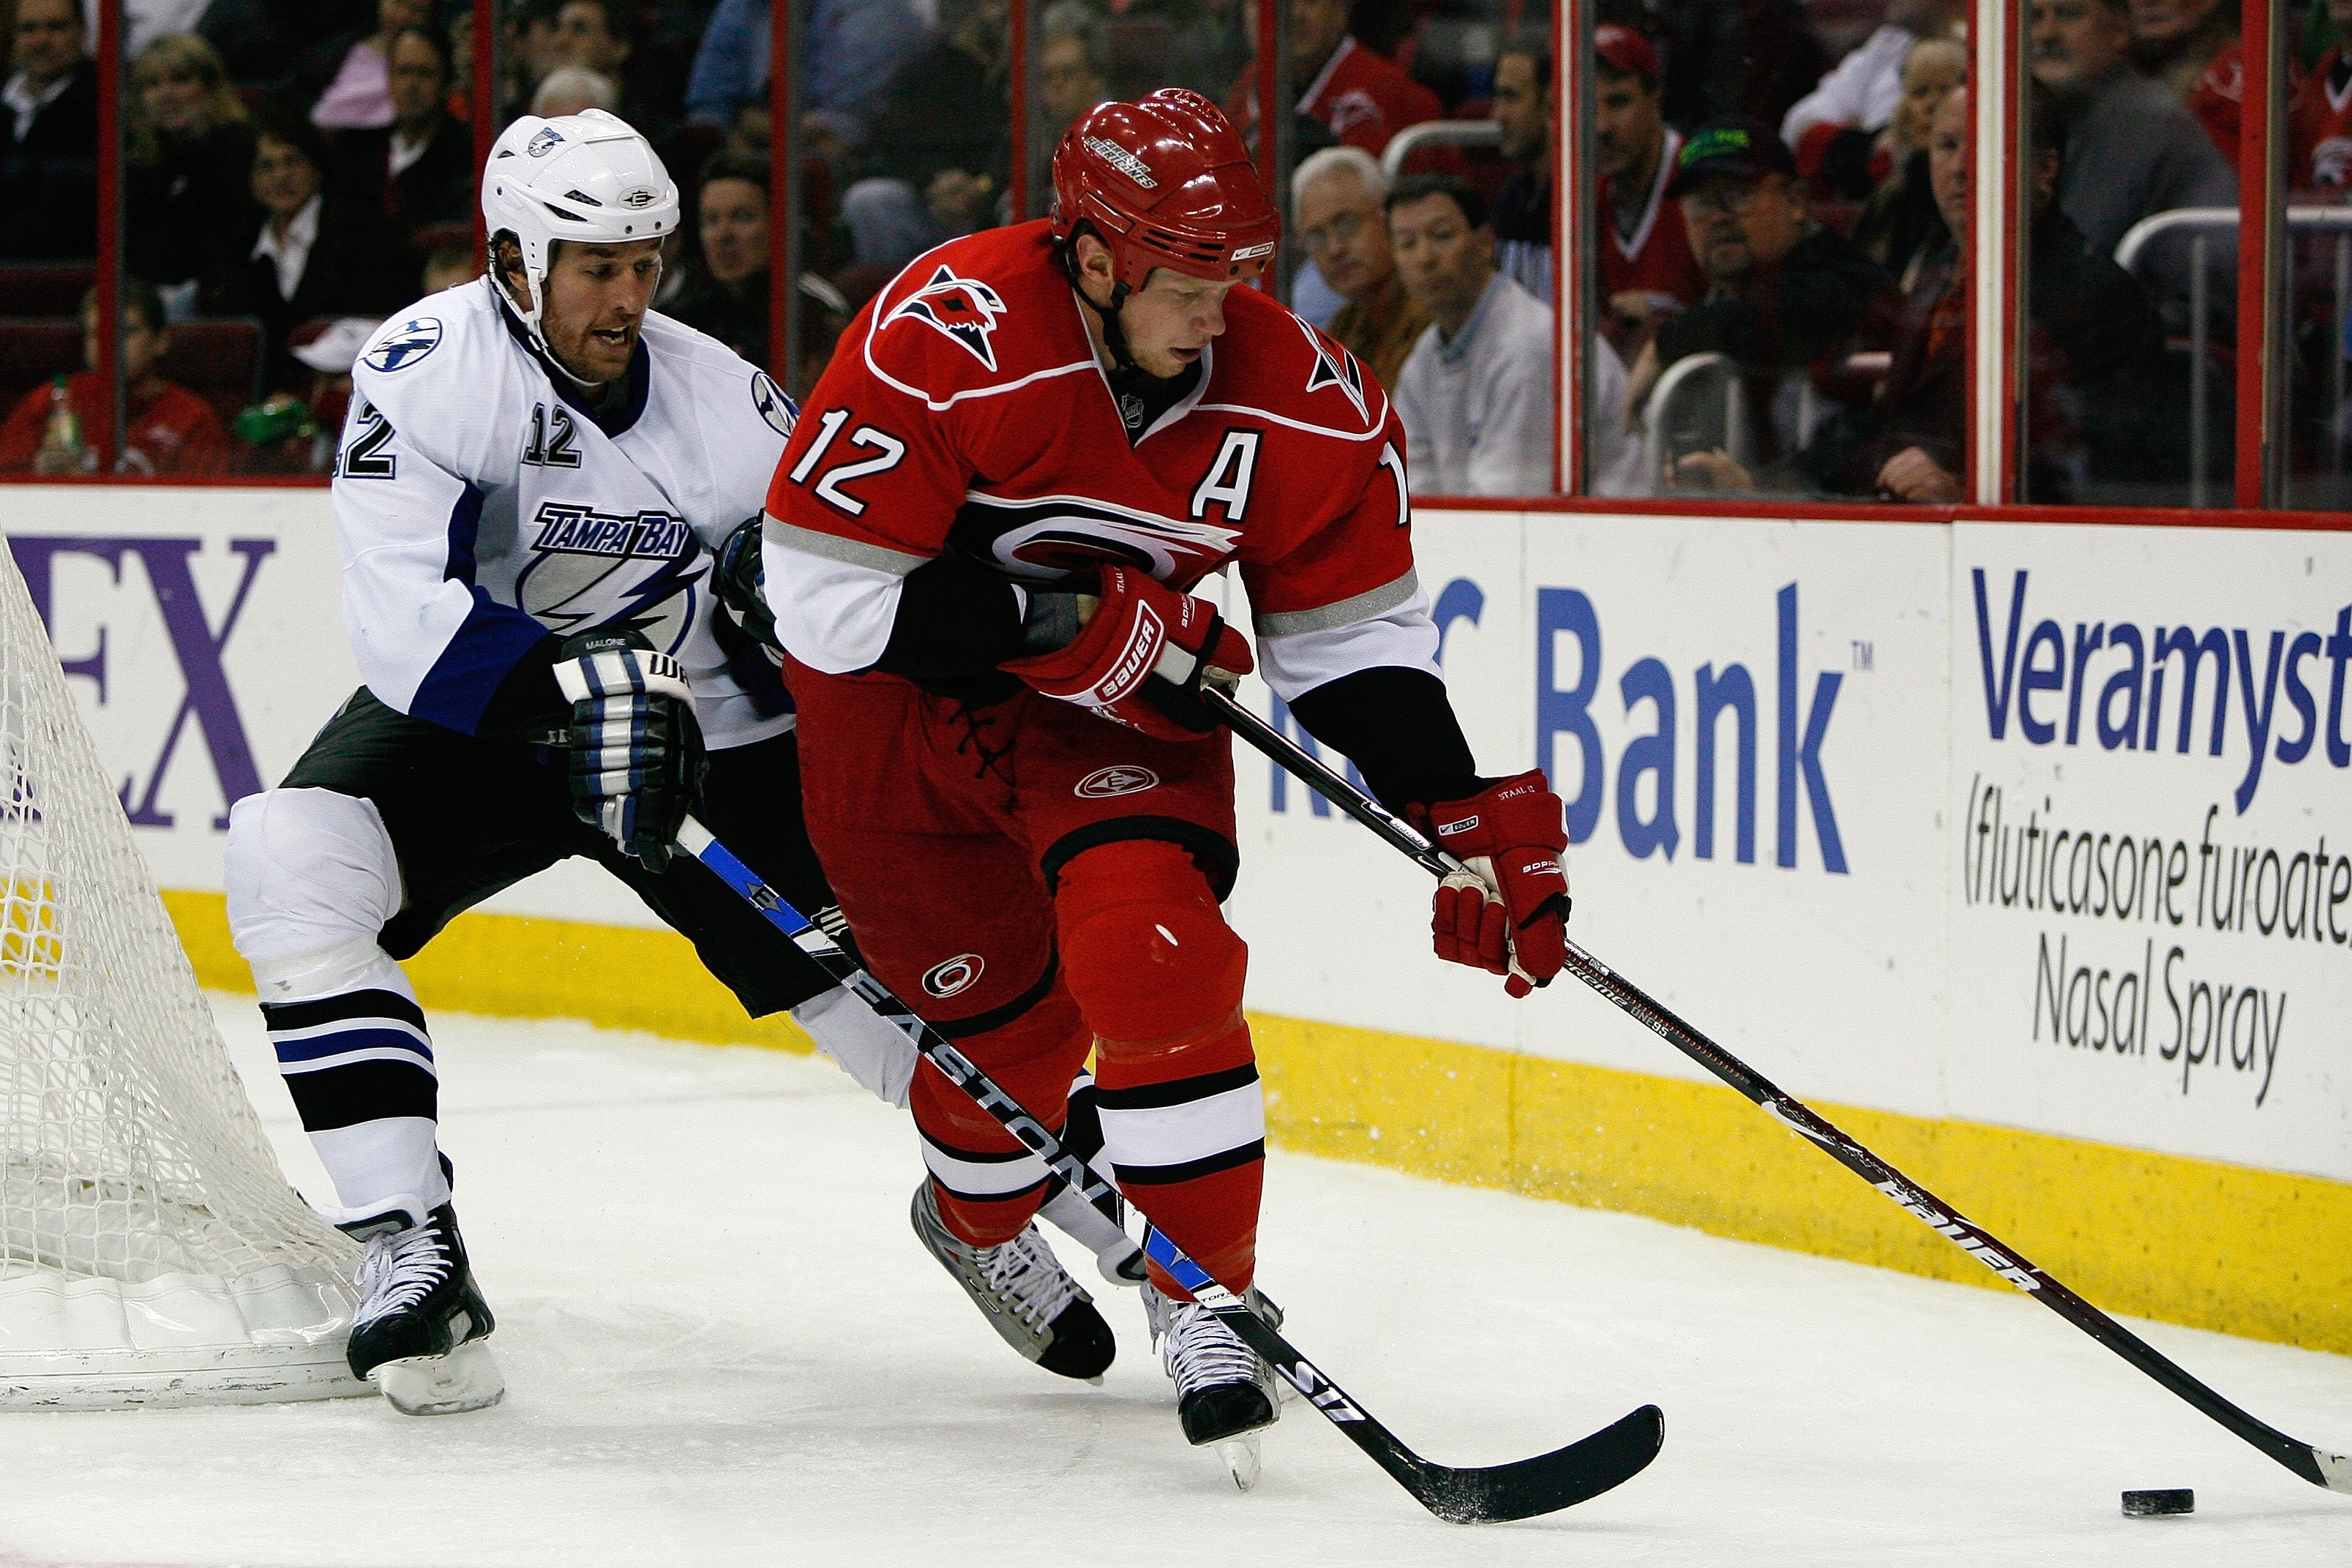 RALEIGH, NC - FEBRUARY 20:  Eric Staal #12 of the Carolina Hurricanes skates with the puck against Ryan Malone #12 of the Tampa Bay Lightning during the game on February 20, 2009 at RBC Center in Raleigh, North Carolina.  (Photo by Kevin C. Cox/Getty Imag